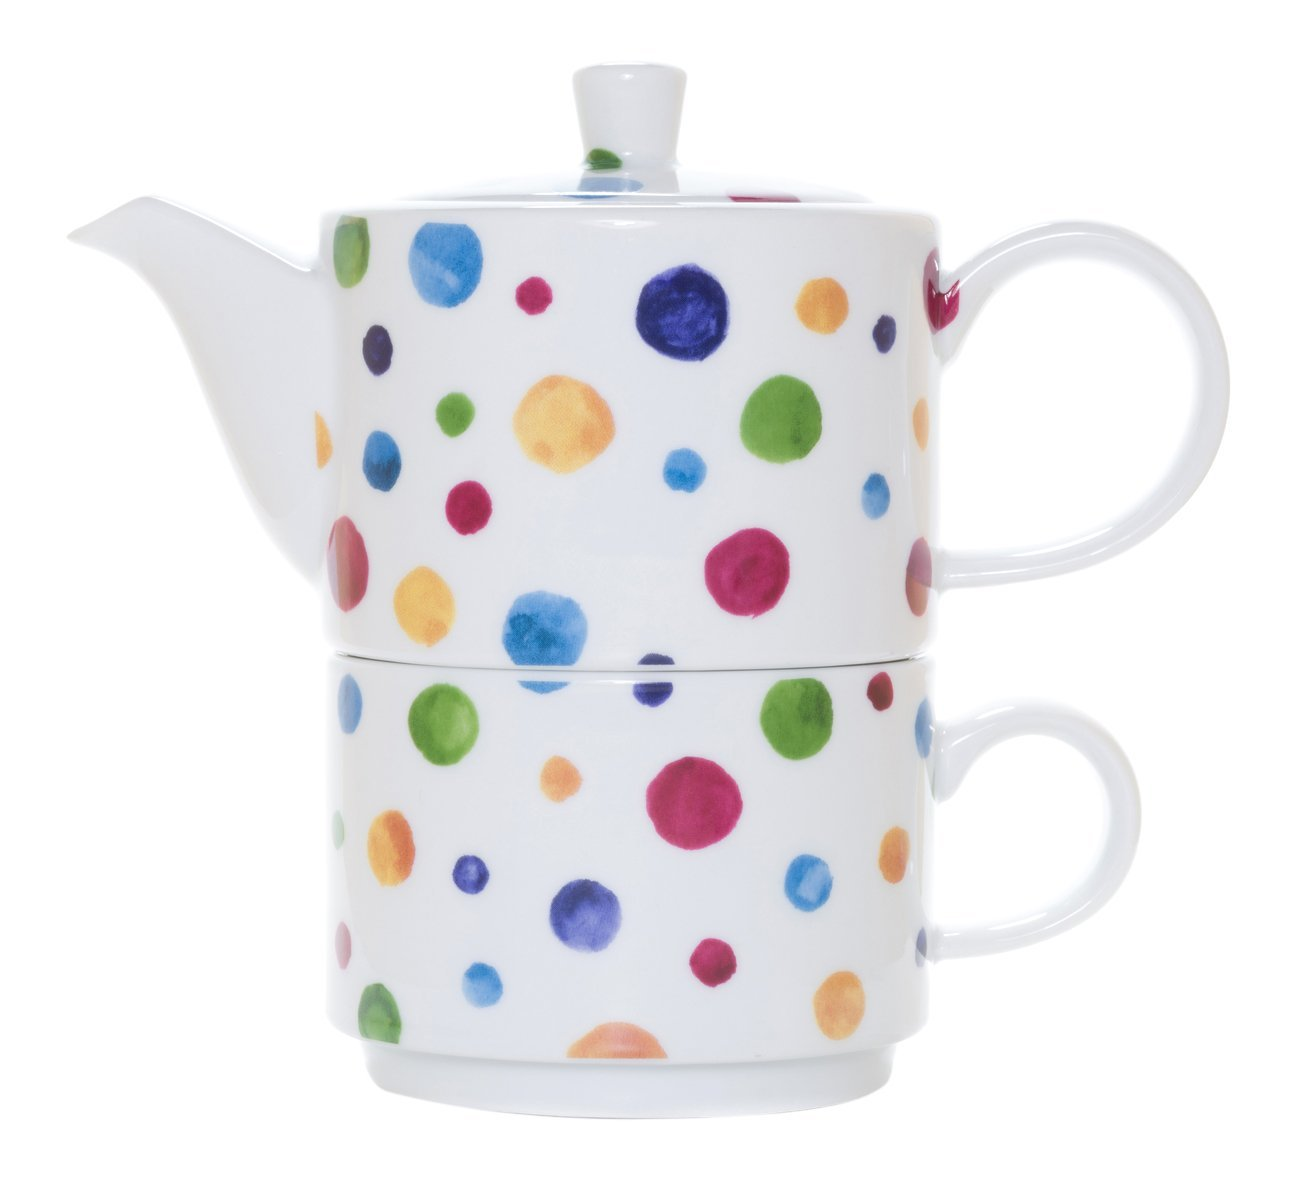 La Cija Tea for One Individual Porcelain Tea Set with Cup and Teapot - Dots Design - White 0689/093T